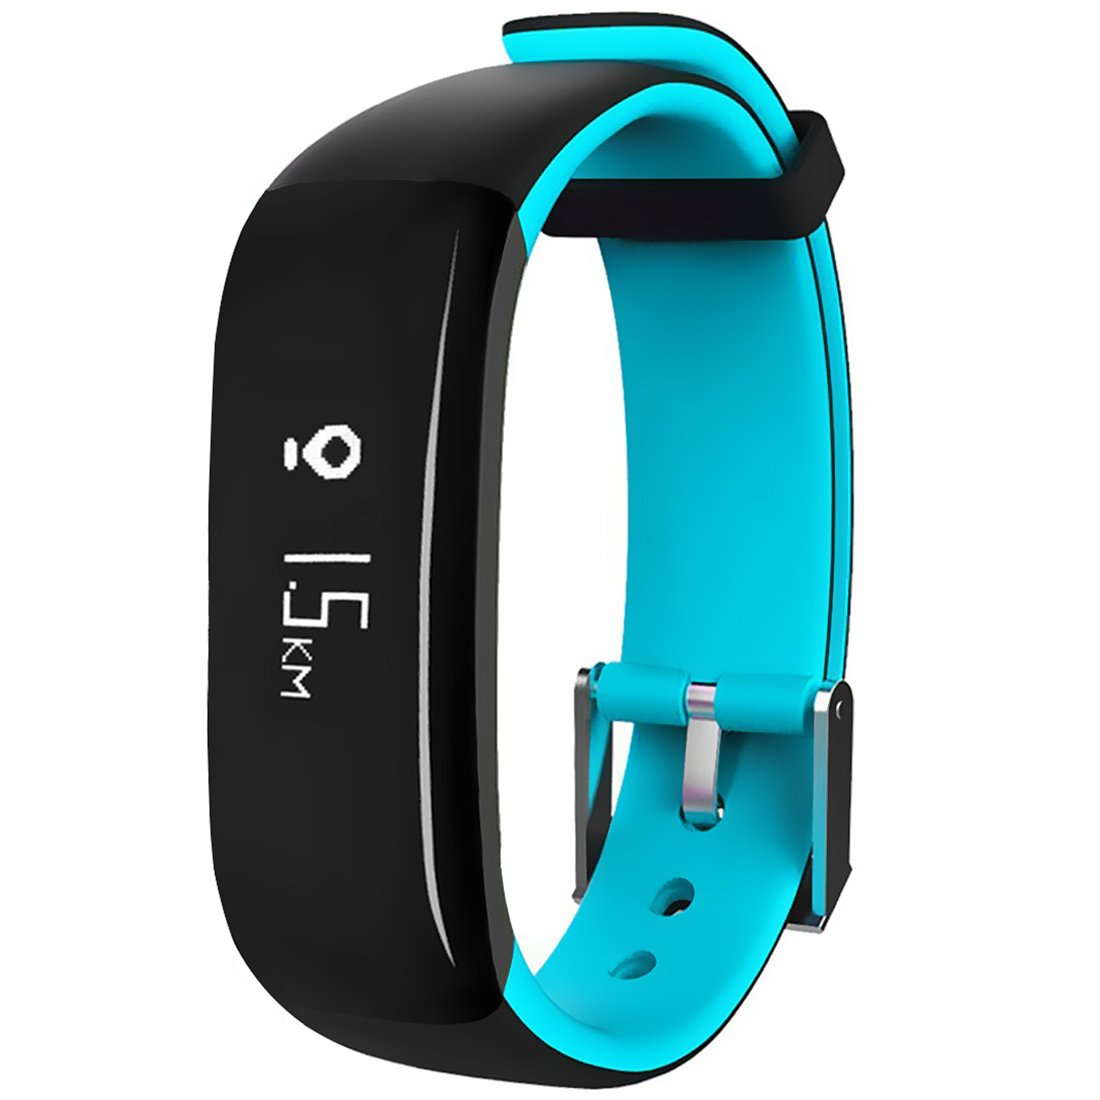 MBHB Waterproof Sport Smart Bracelet, Health Tracker with Heart Rate / Blood Pressure / Sleep Monitor, OLED Pedometer Bluetooth 4.0 Fitness Tracker for iOS Android Smartphones, Blue